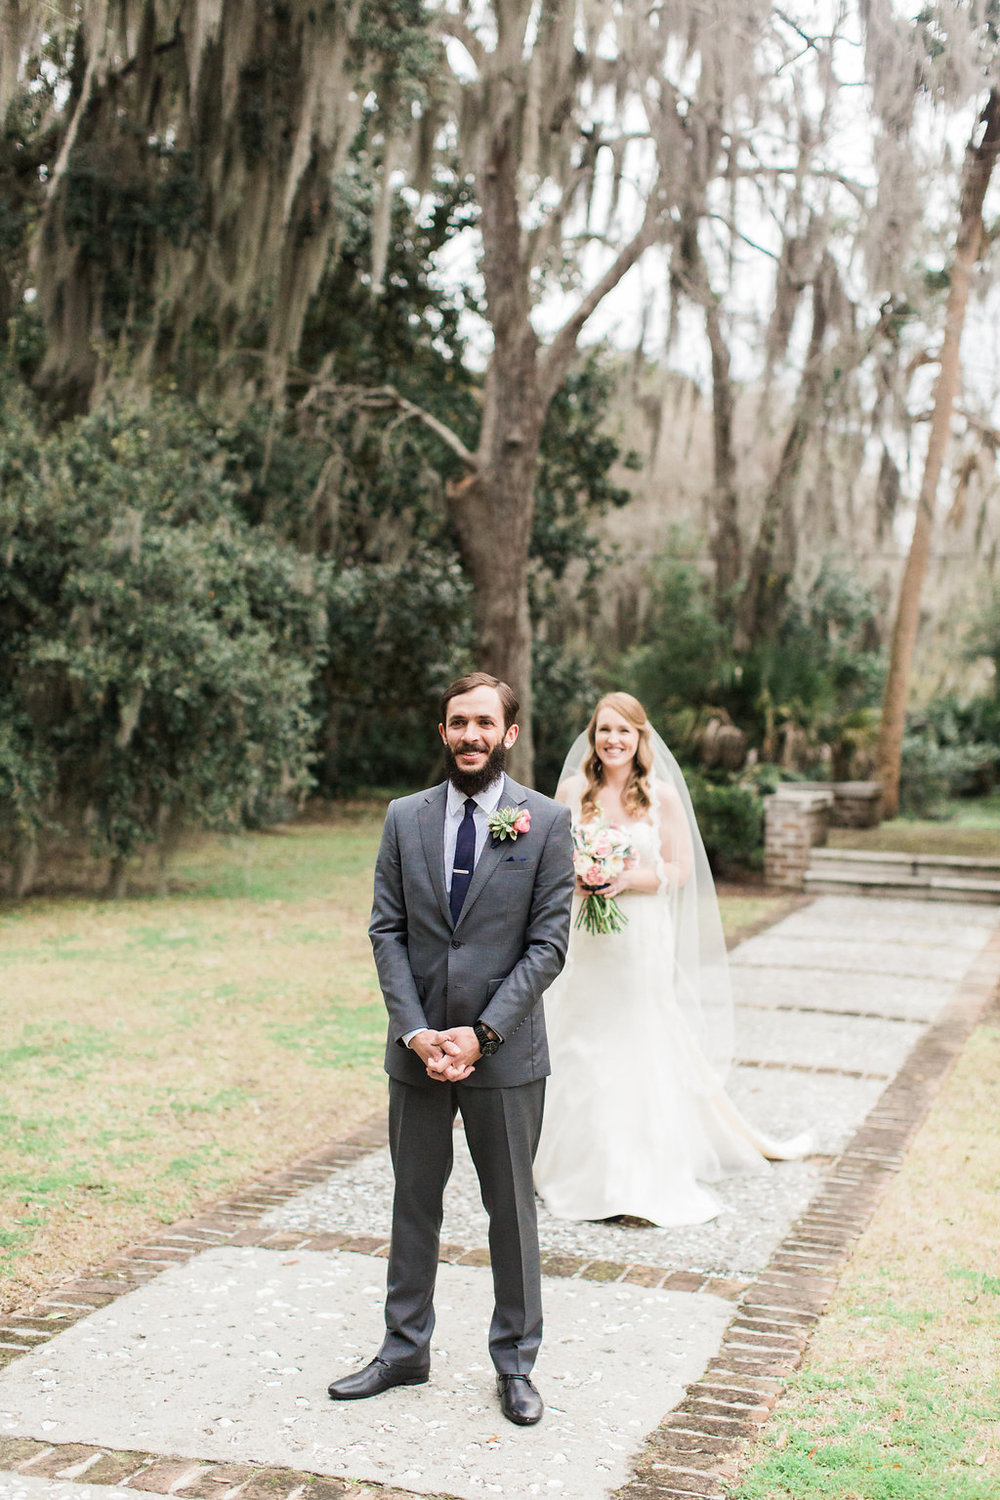 nancy-matt-wedding-whitfield-chapel-wedding-ivory-and-beau-bridal-boutique-the-happy-bloom-savannah-weddings-savannah-wedding-planner-savannah-bridal-boutique-savannah-florist-savannah-bridal-southern-wedding-16.jpg